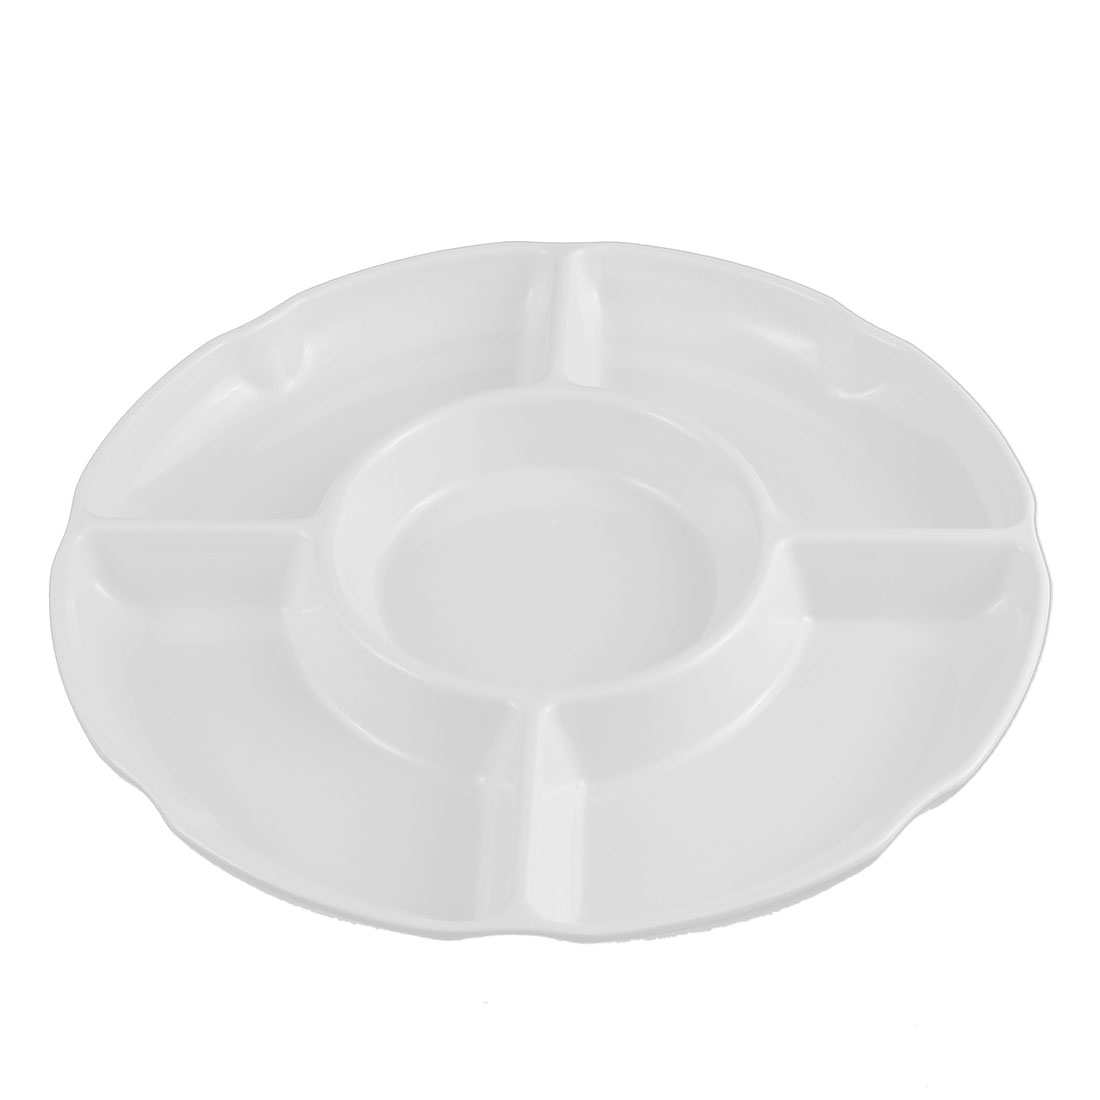 "Plastic 5 Sections Fruits Sushi Divided Platter White 11"" Dia"